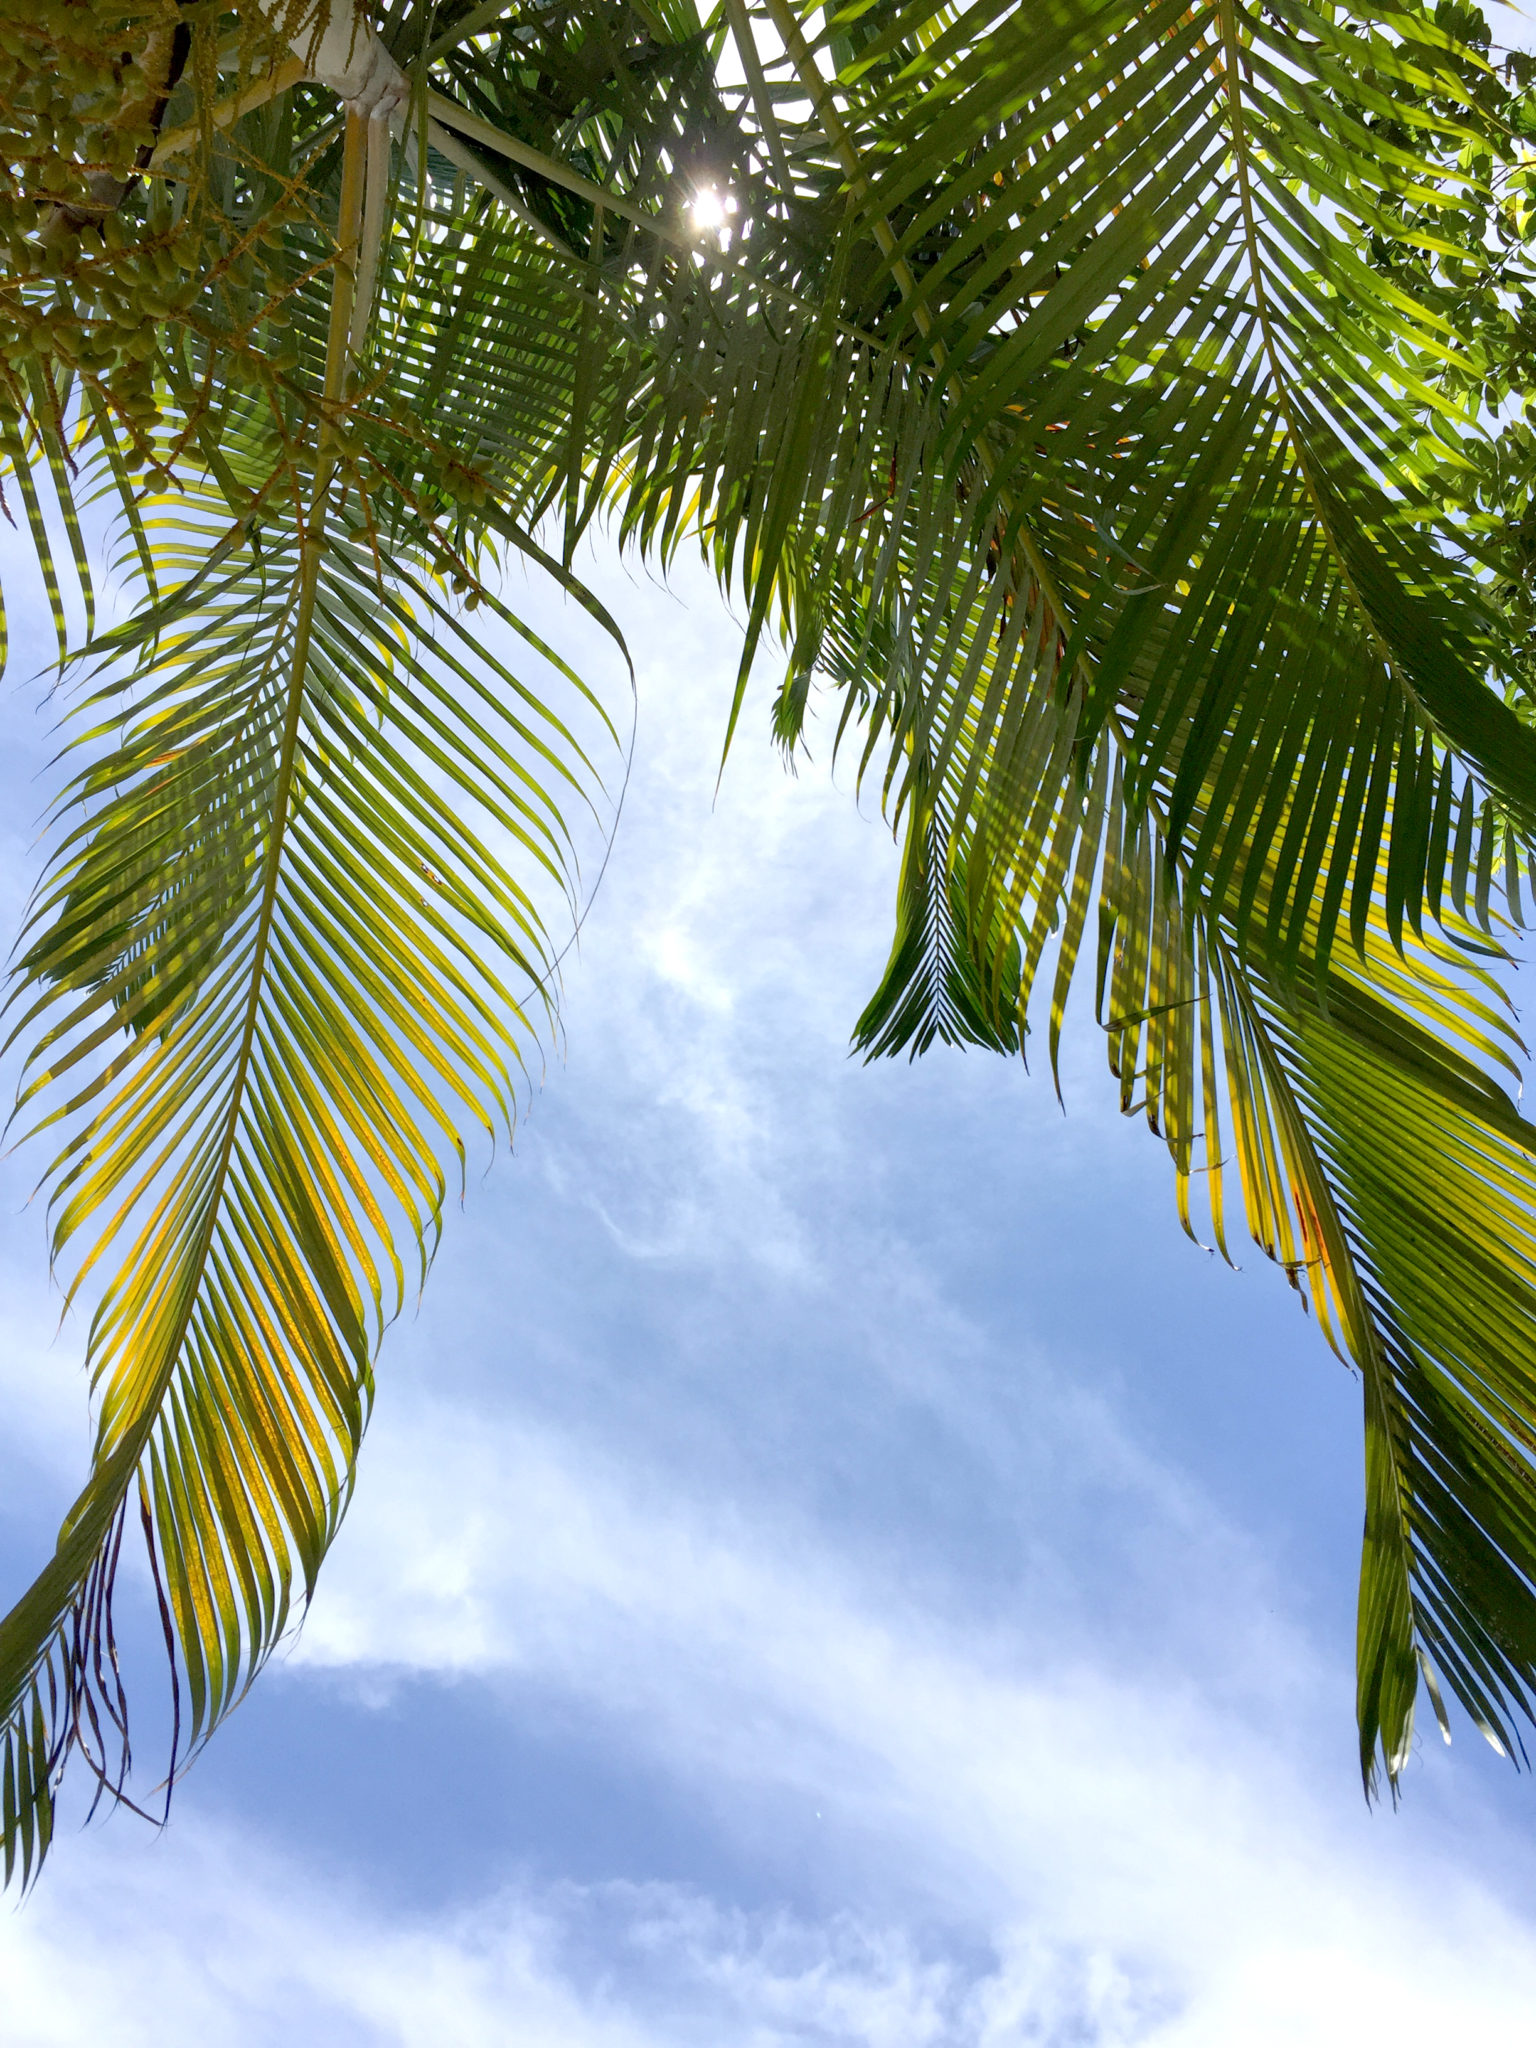 Republique_dominicaine_damajagua_palmtree